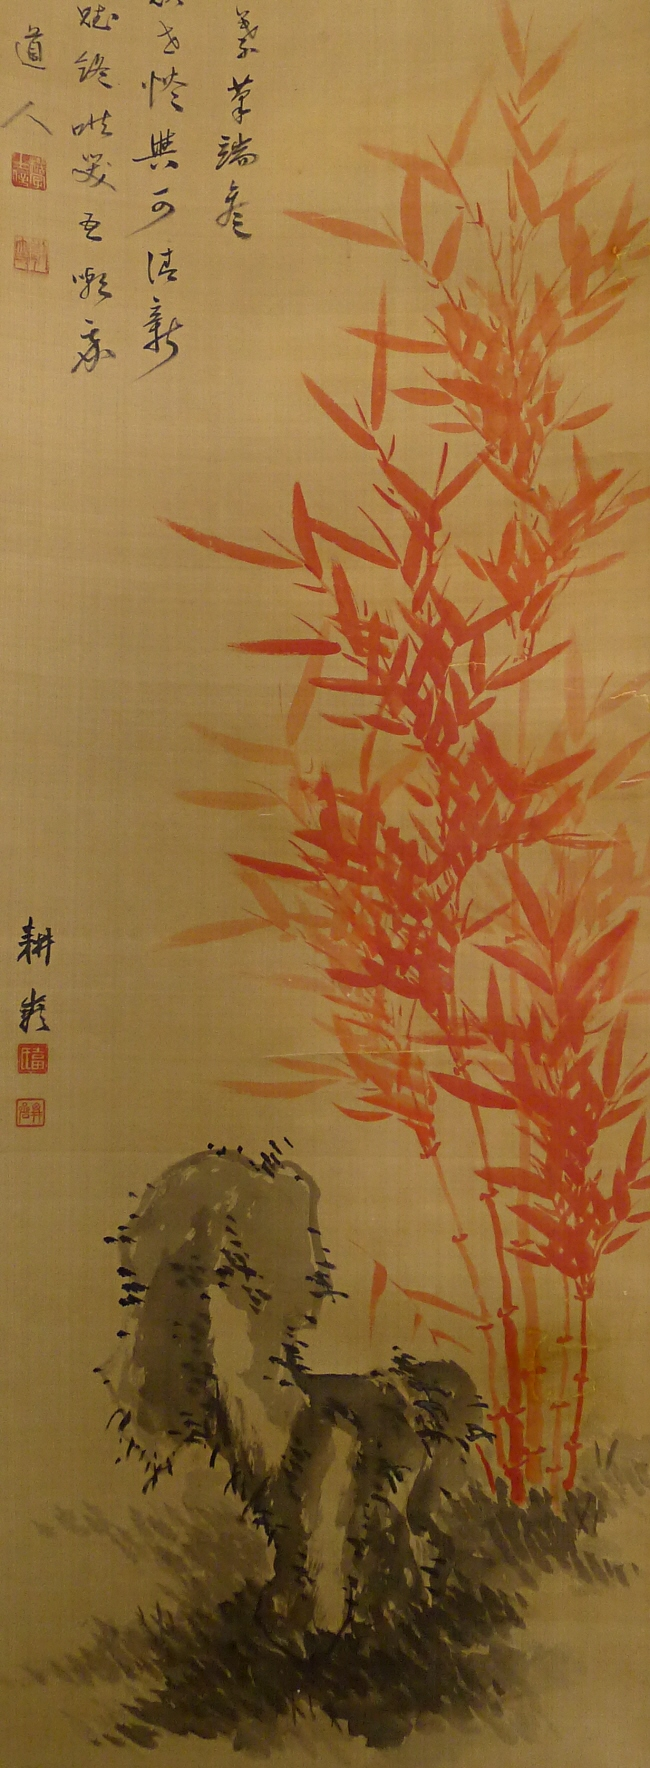 Bamboo (Sasa) depicted in Red